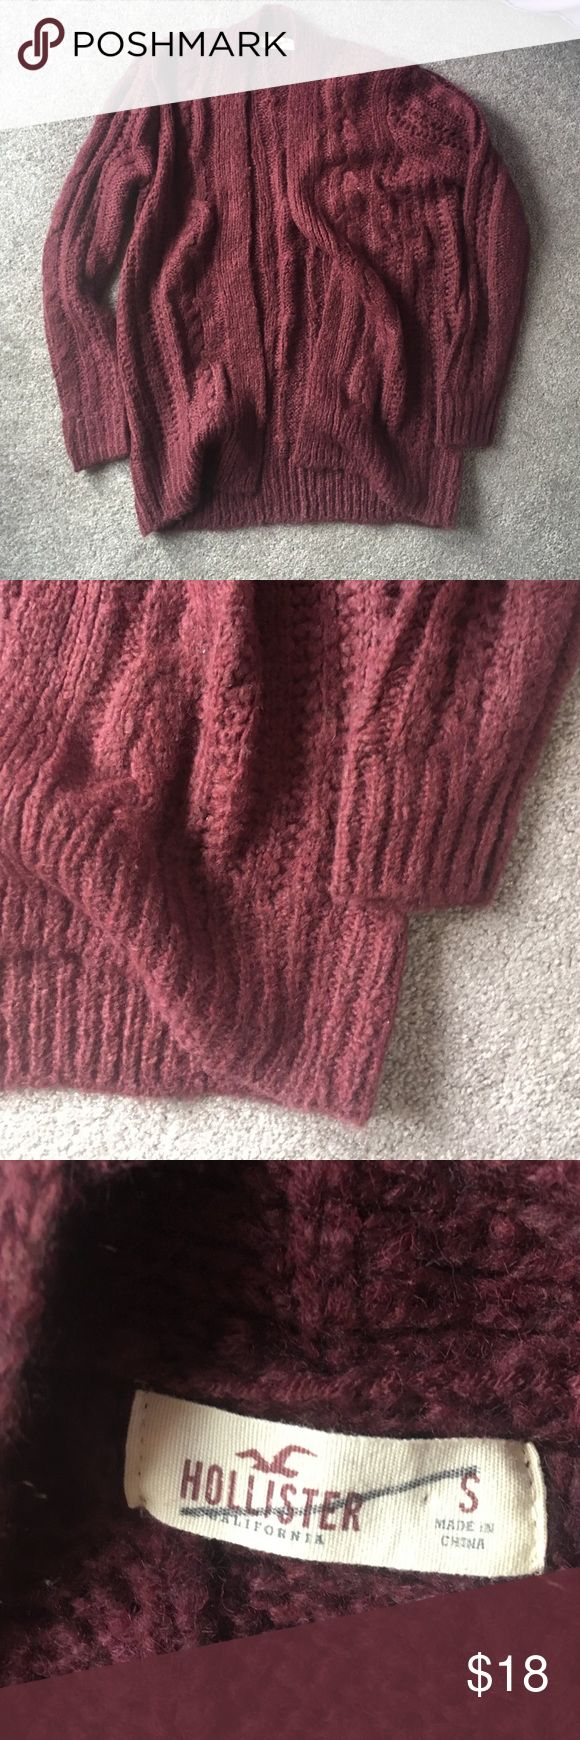 Maroon cardigan sweater This is kinda thick and chunky!!! Super soft!! It is like new! No flaws at all. It is a size small. It would probably fit an xsmall nice and obersized and it would fit a medium more fitted. 20% off bundles and excepting all reasonable offers Hollister Sweaters Cardigans